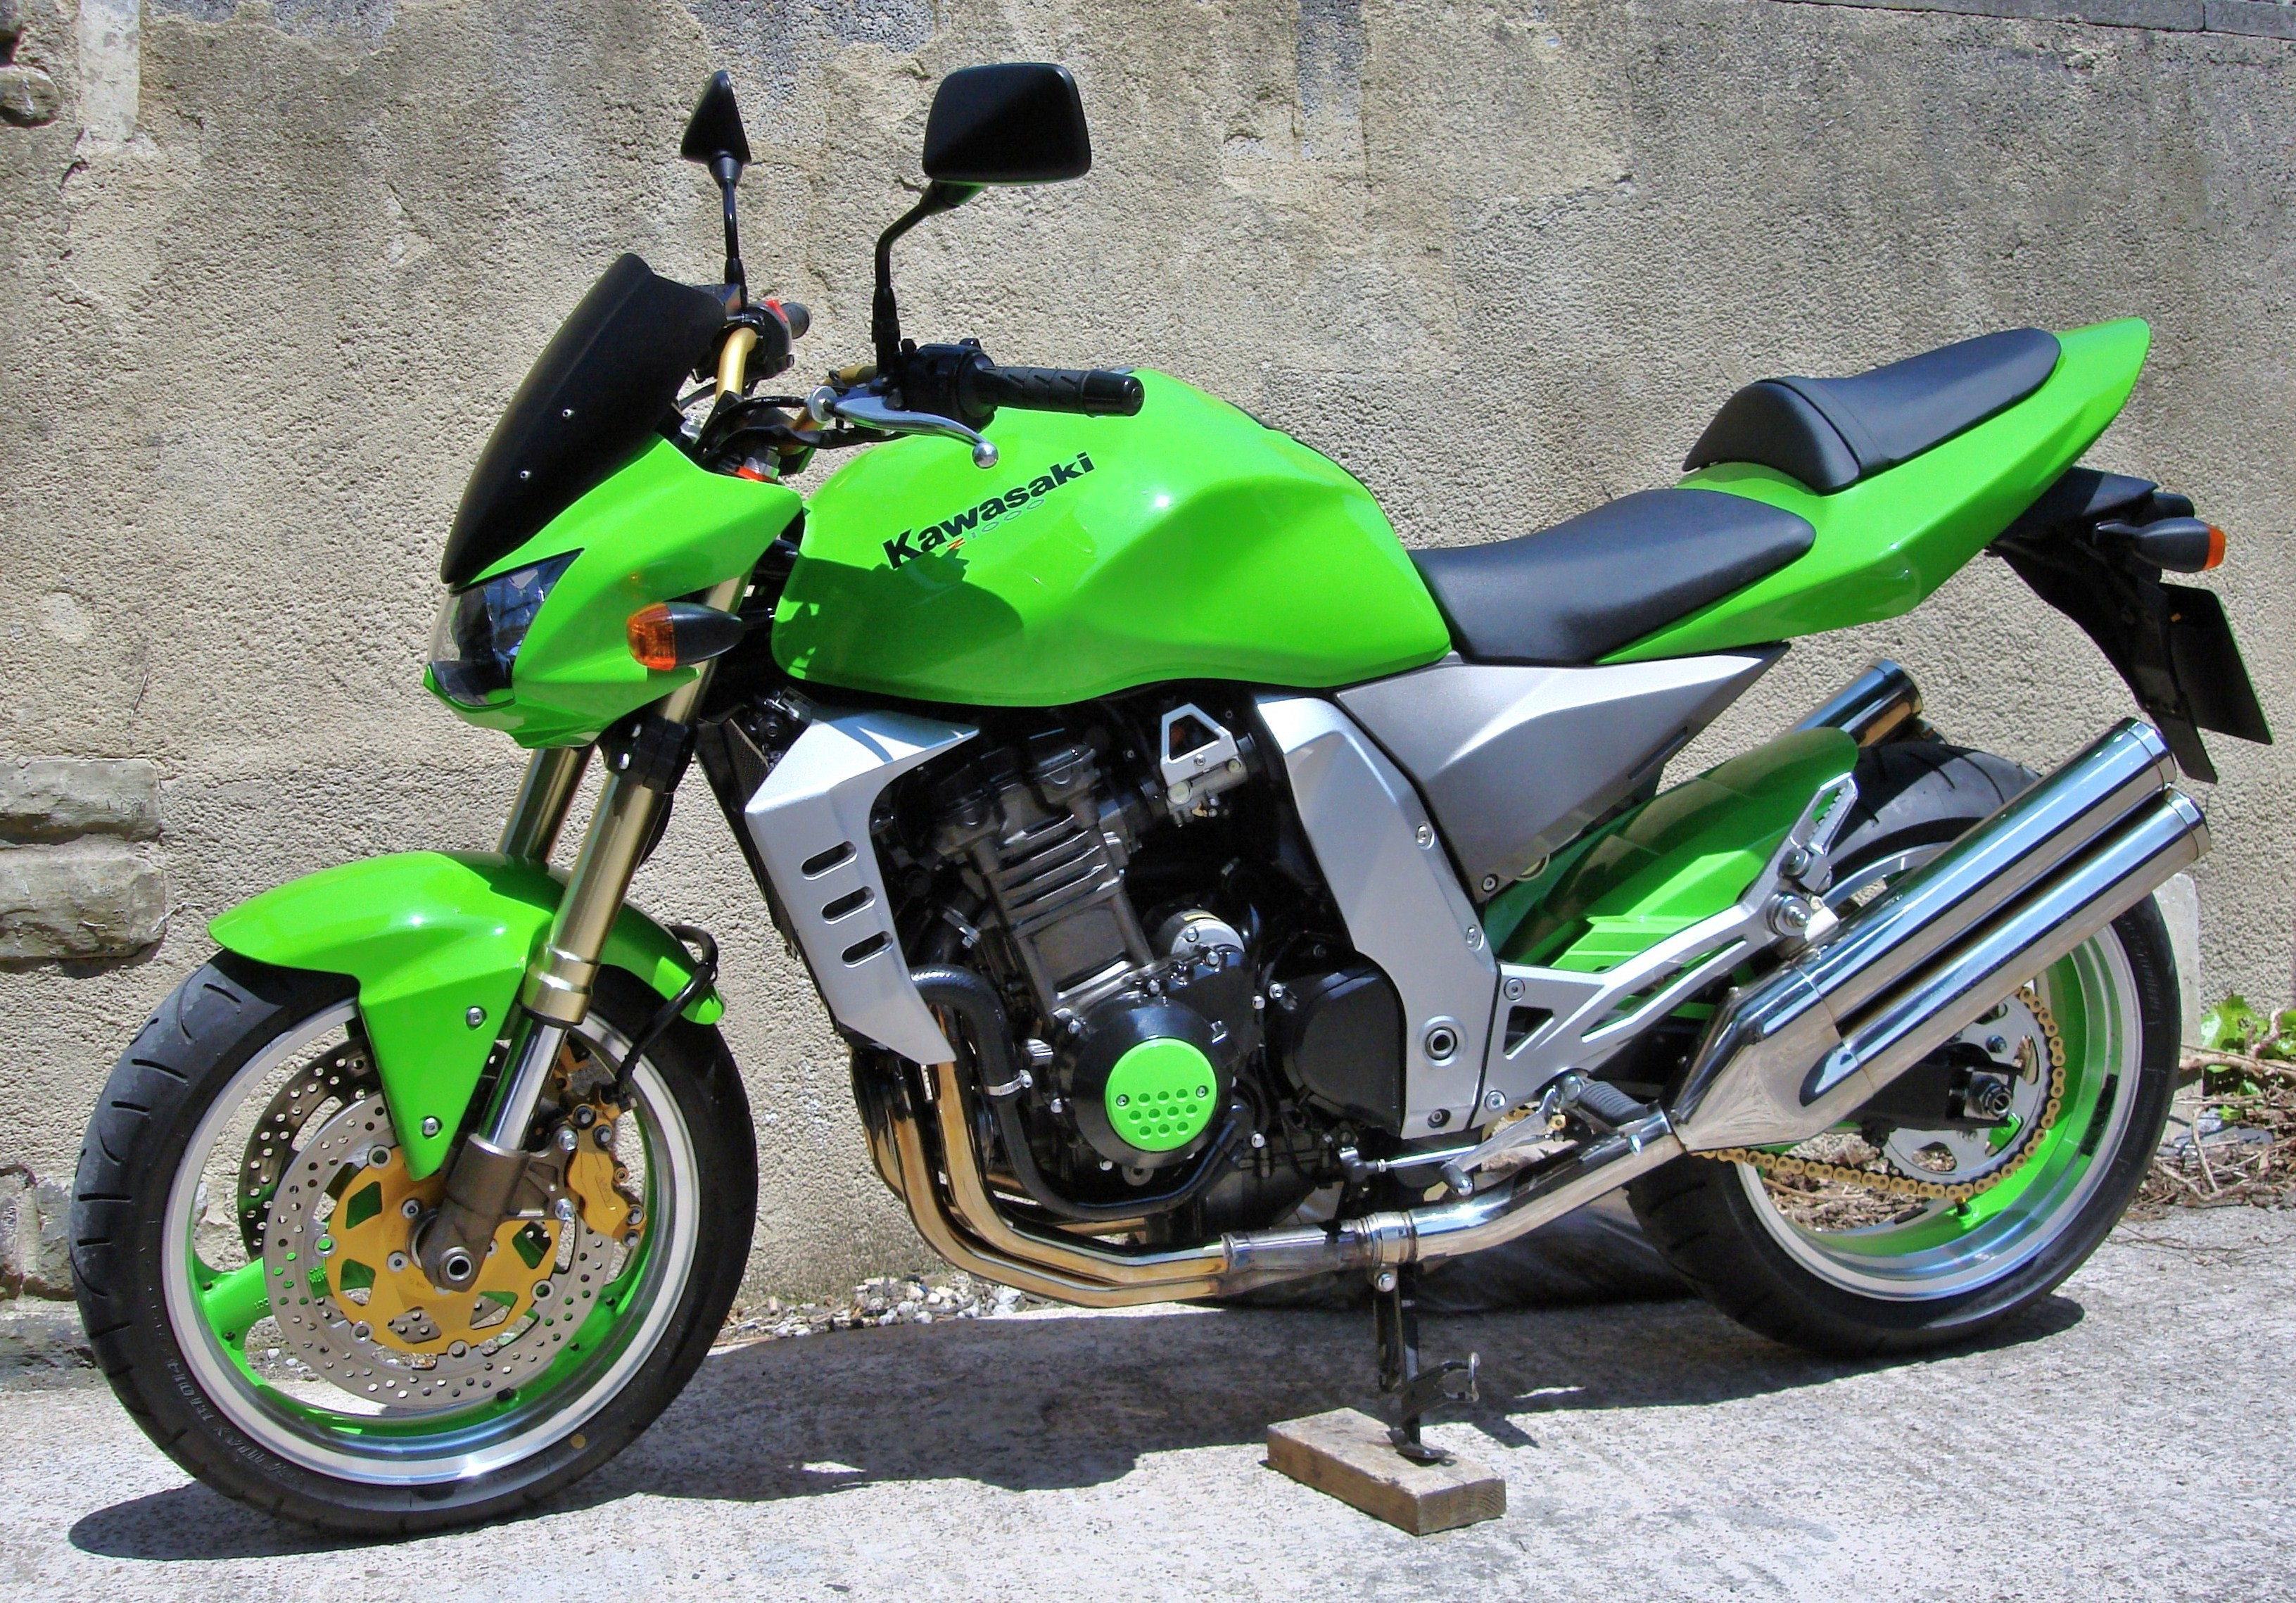 Images of Z1000 Custom Parts. 2008 YAMAHA YZ125 SERVICE REPAIR SHOP MANUAL